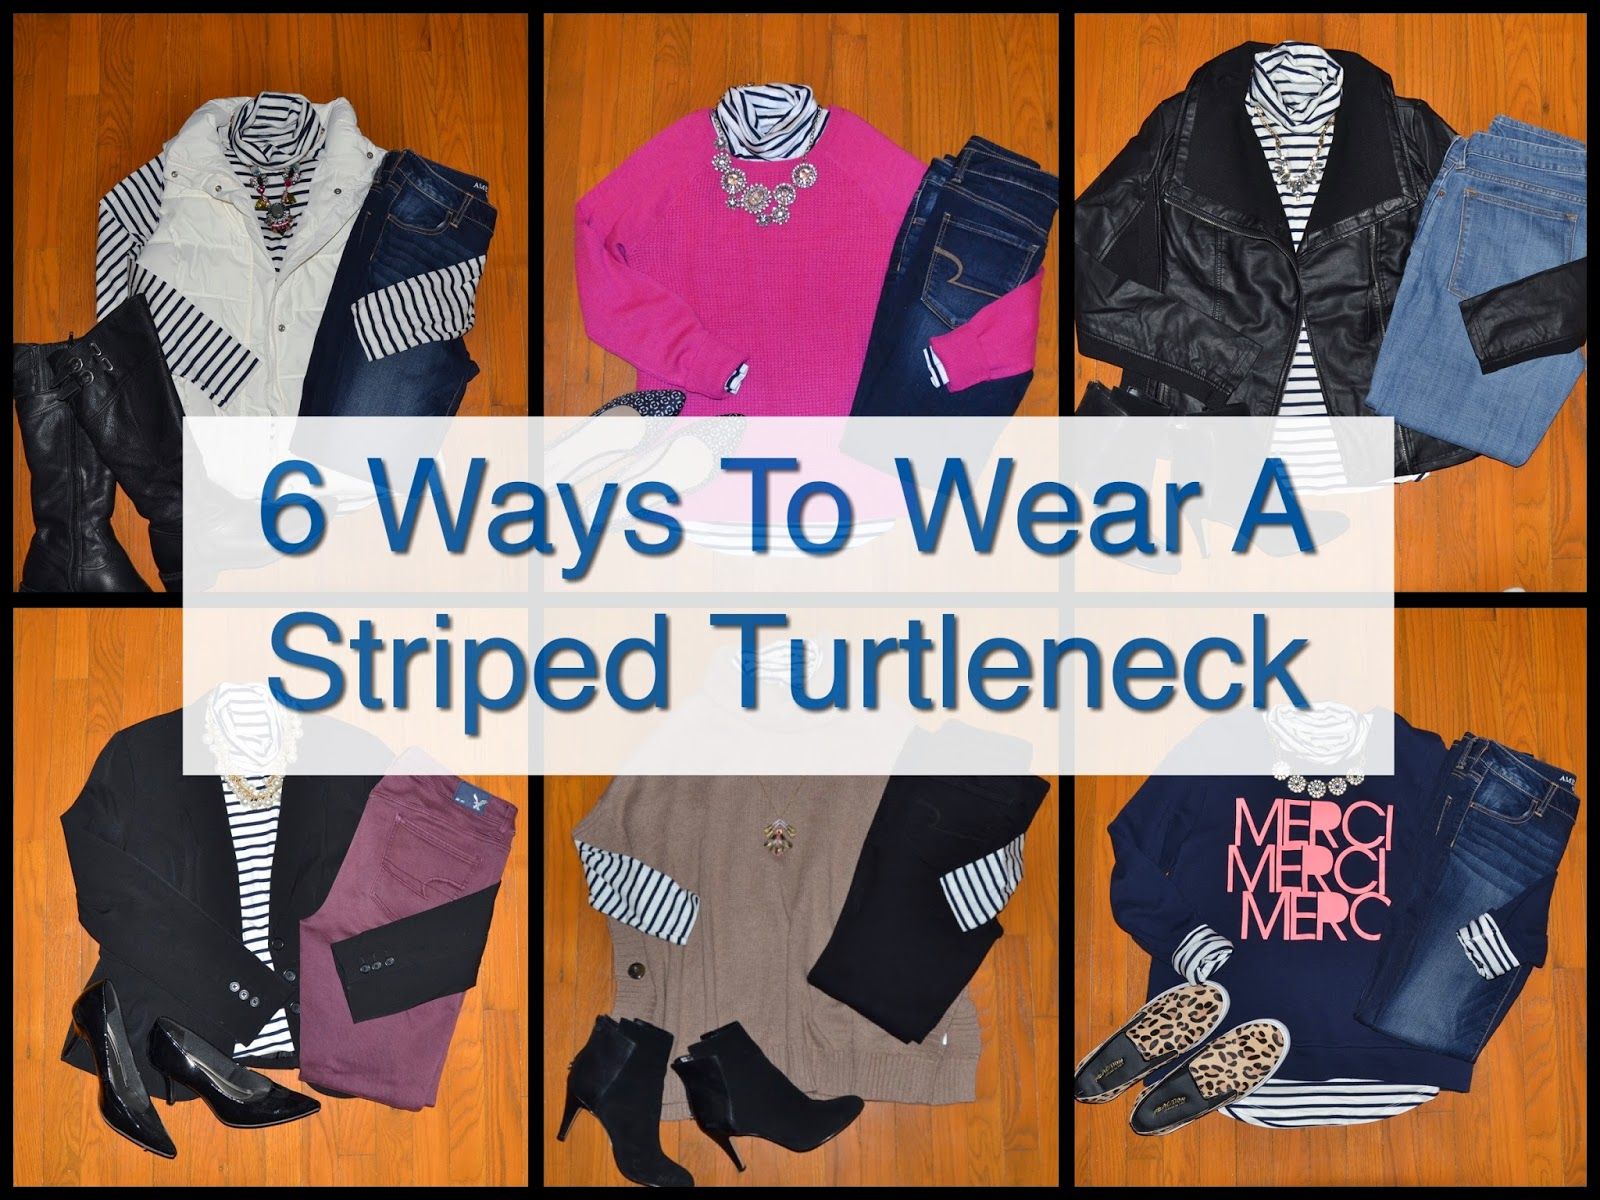 How To Wear: 6 Ways To Wear a Striped Turtleneck